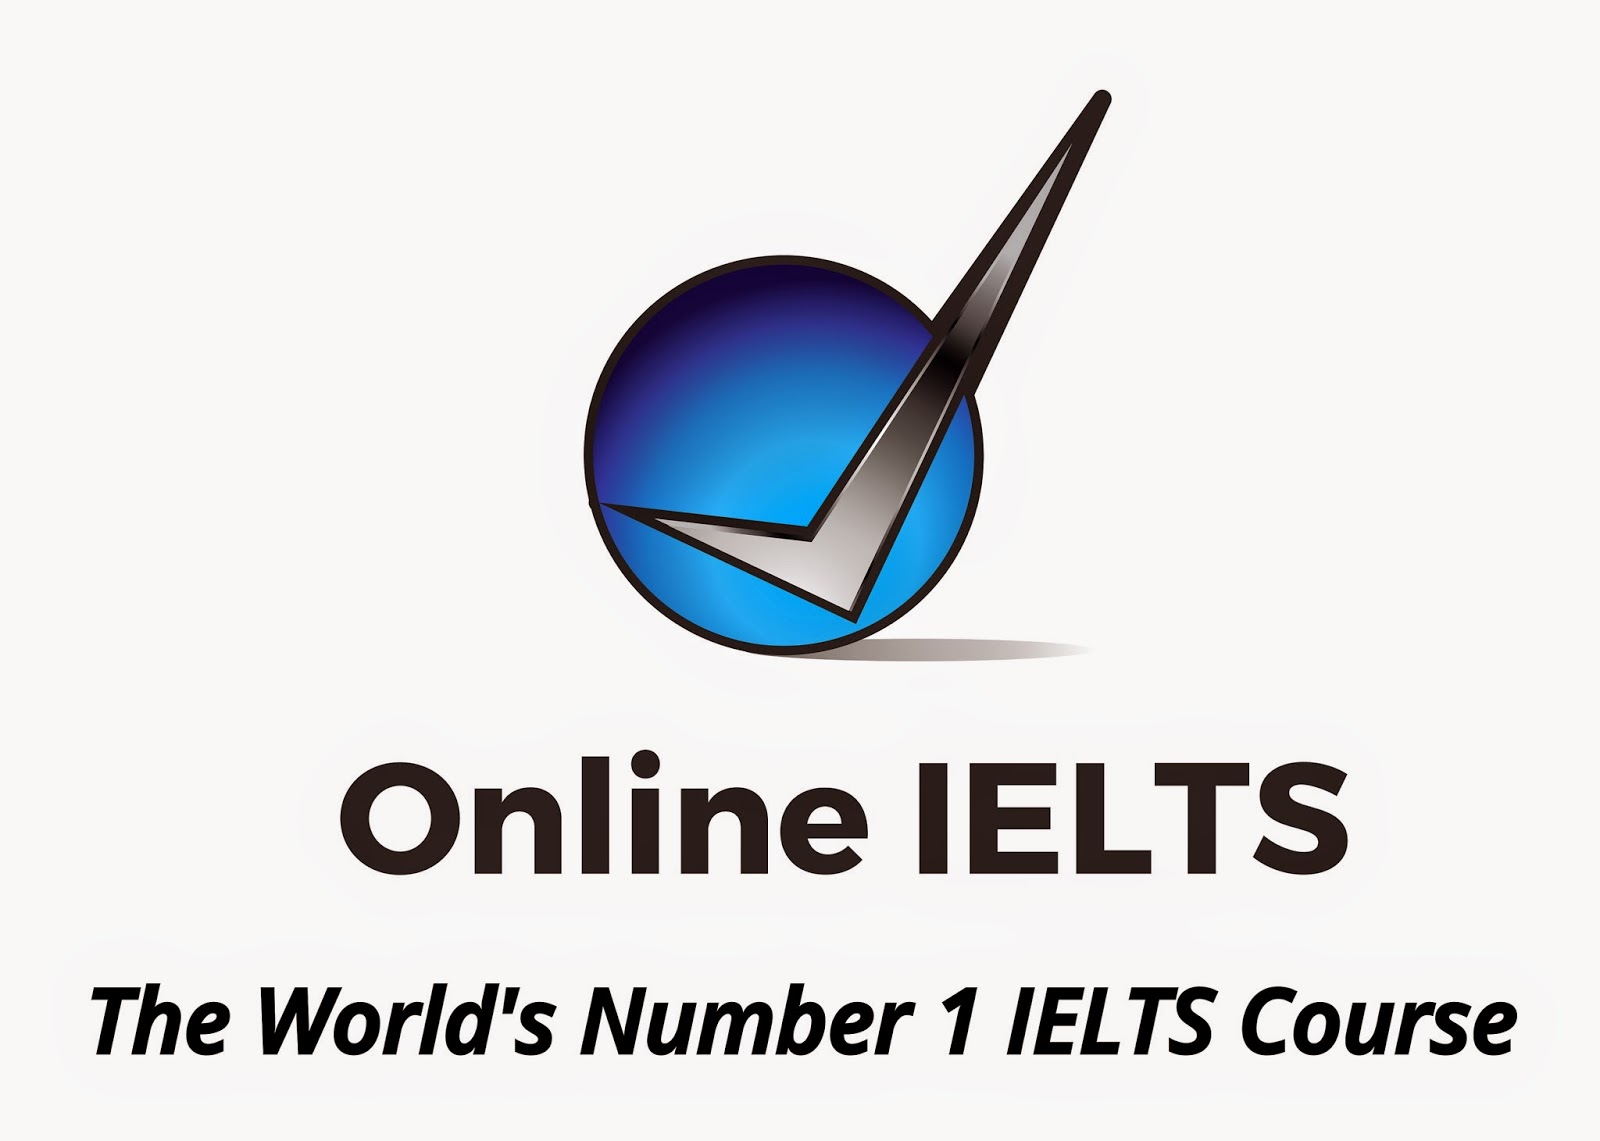 online ielts preparation course ielts writing task can i use ielts writing task 2 can i use open ended or rhetorical questions ielts preparation